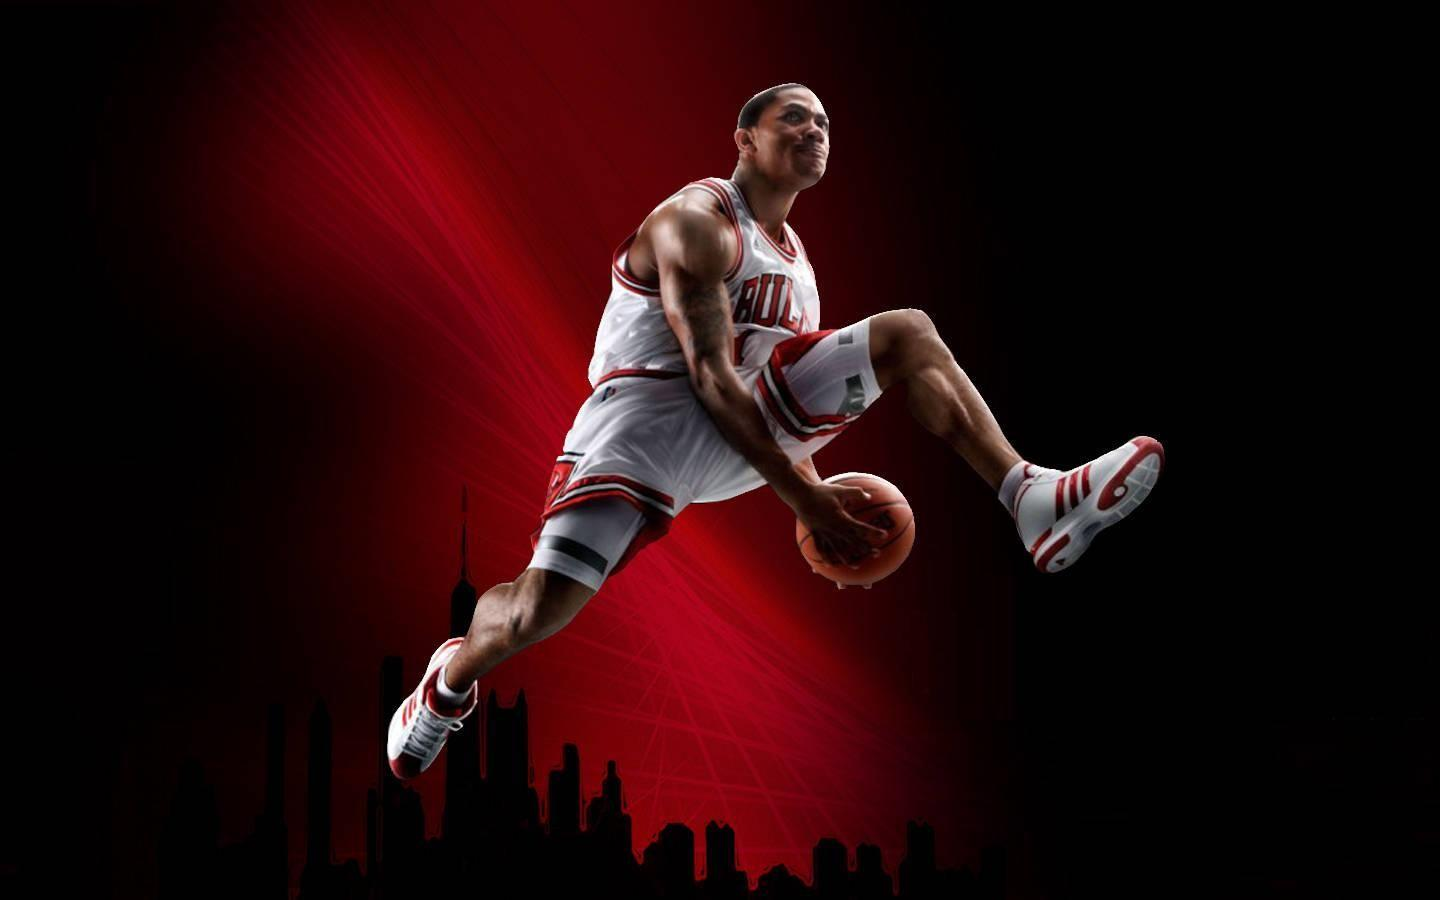 awesome basketball wallpapers unpixelated - photo #5